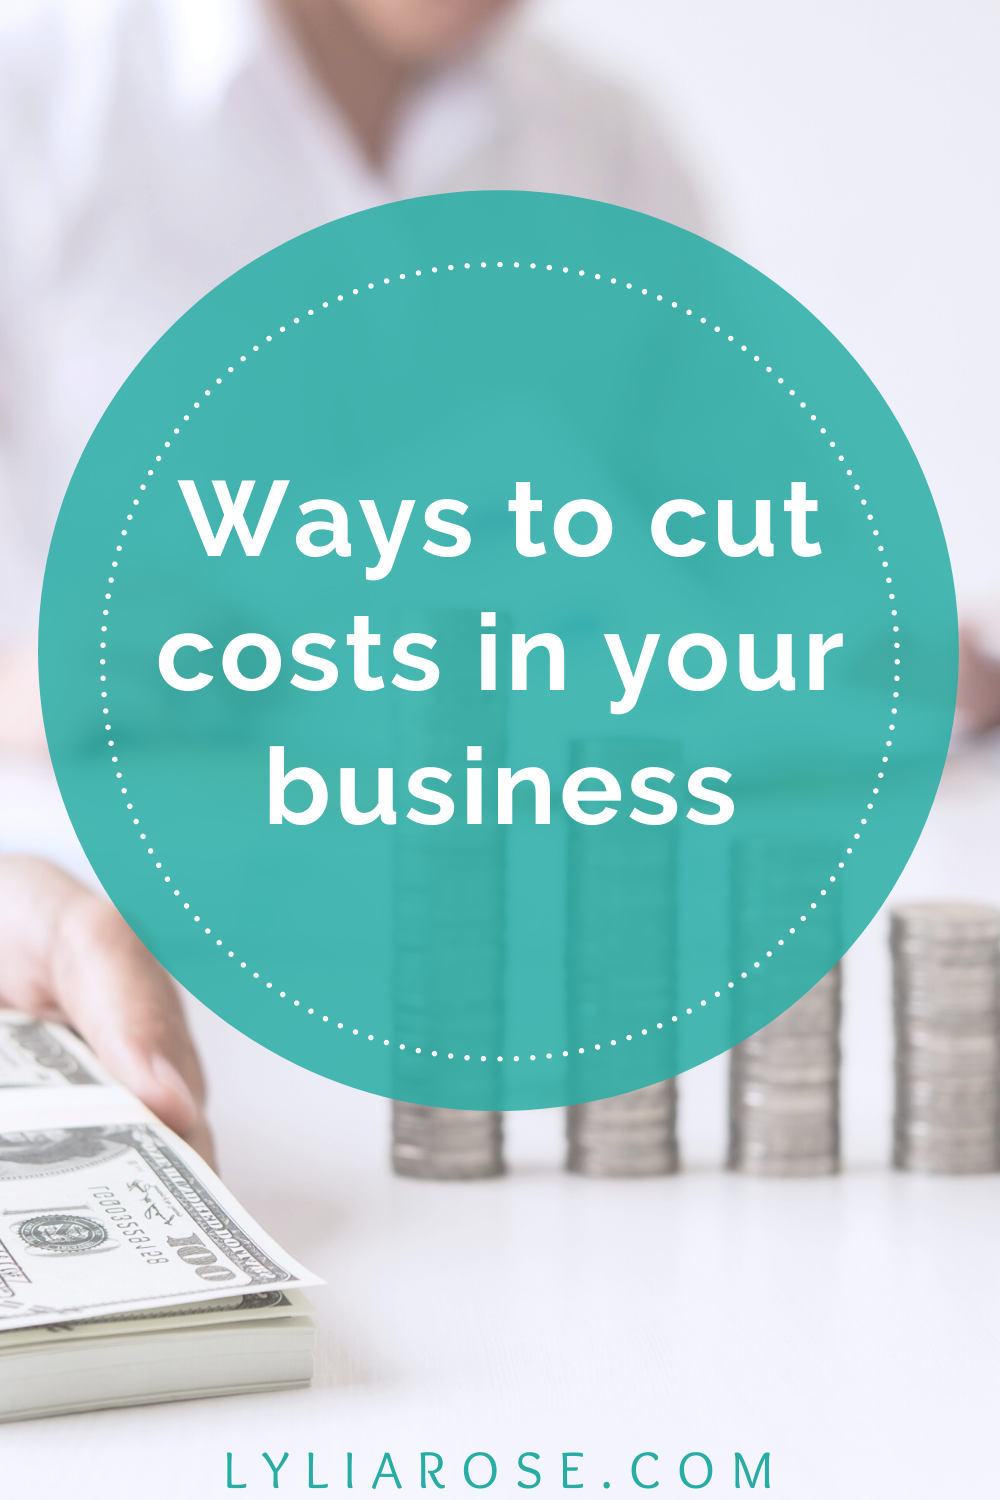 Ways to cut costs in your business